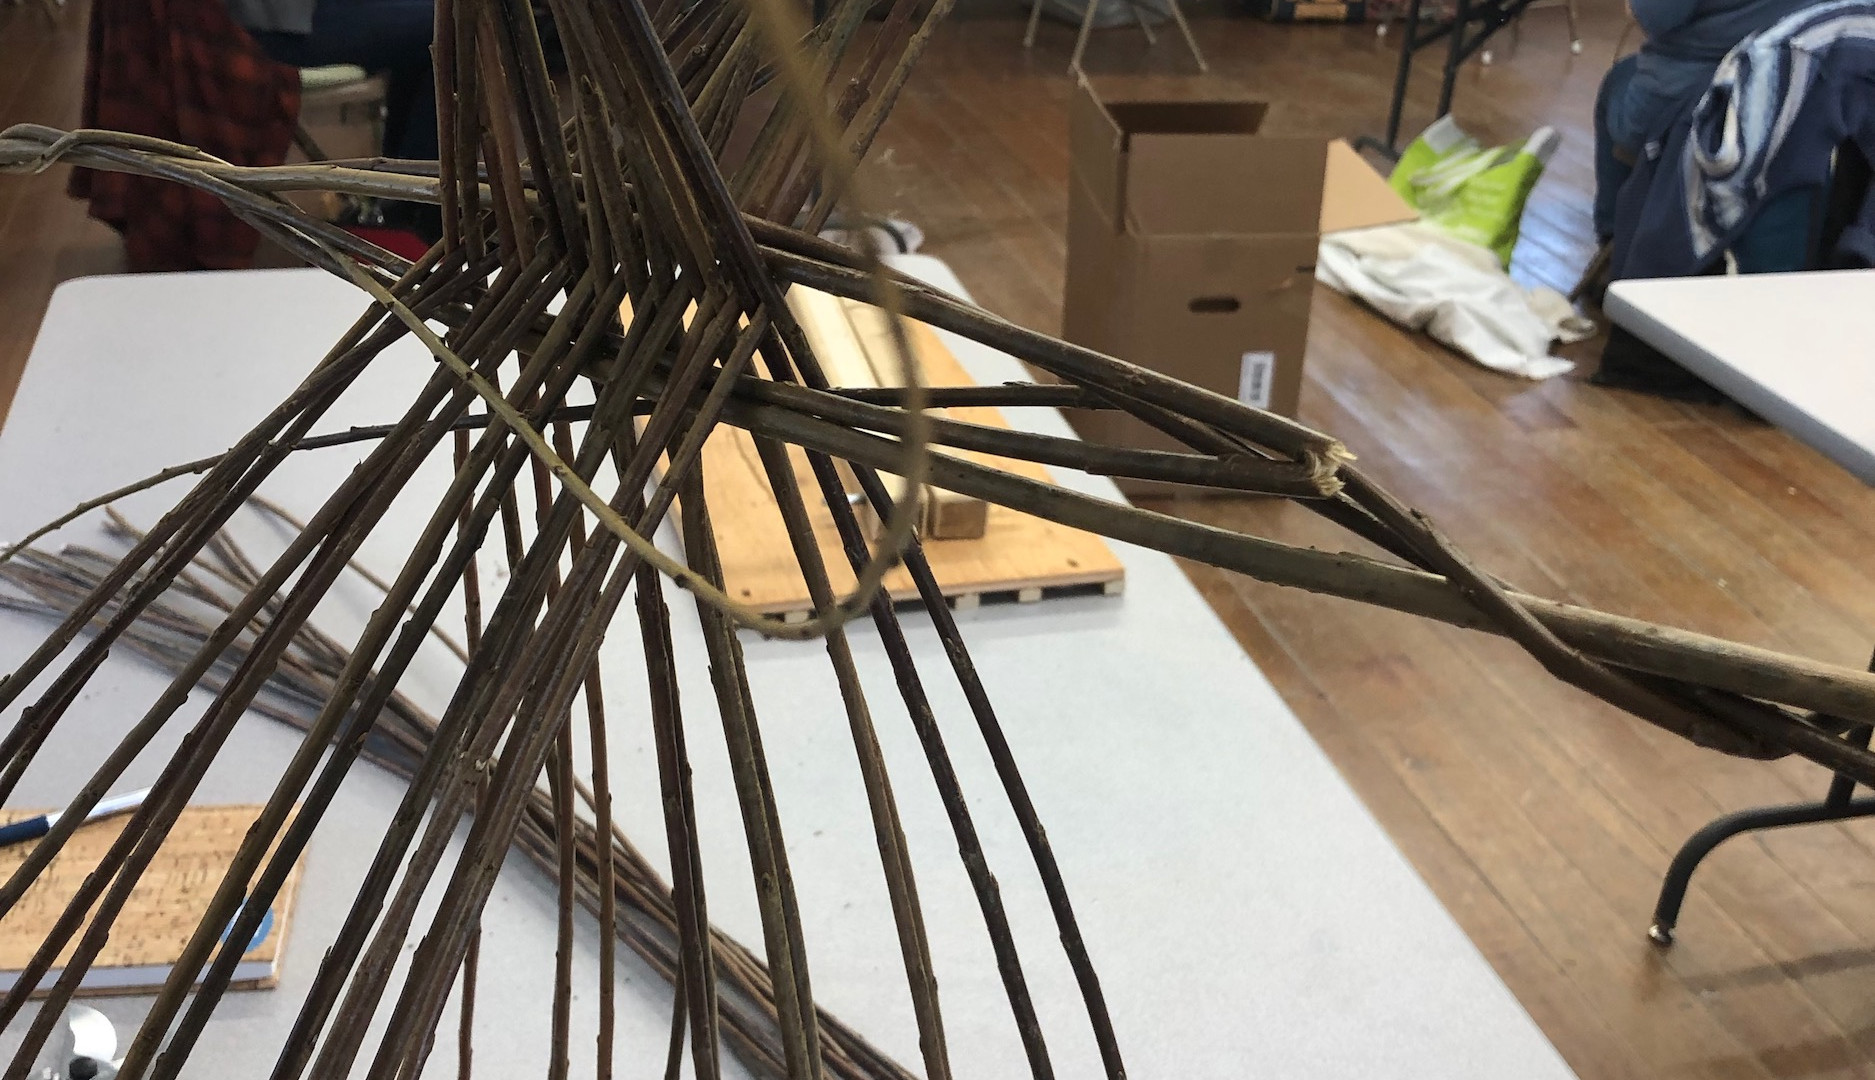 Create a system to keep the spokes from tangling